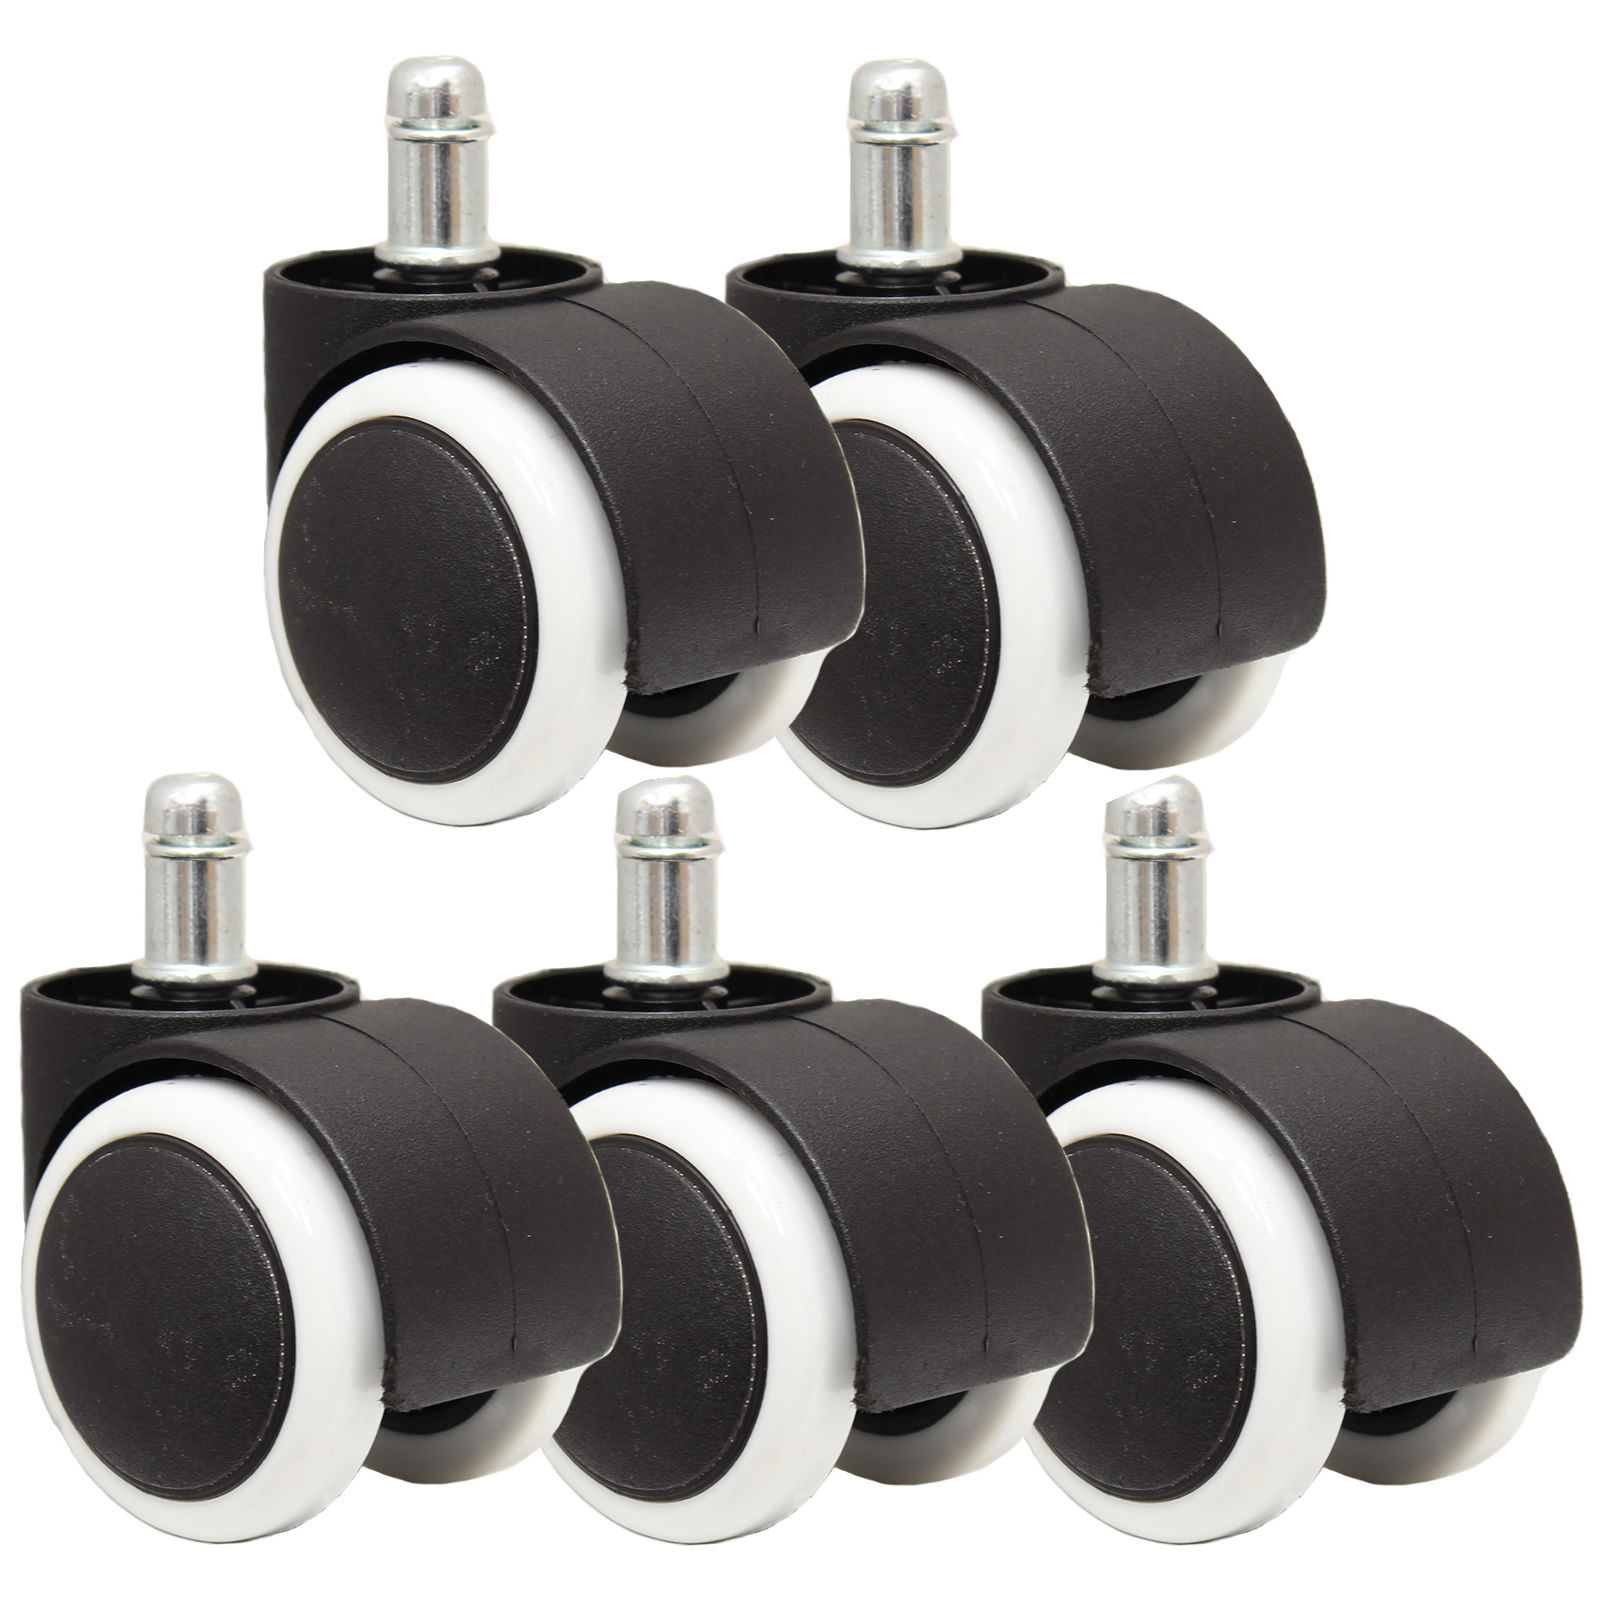 5 soft rubber non marking castor wheels computer office chair caster 50mm 11mm ebay. Black Bedroom Furniture Sets. Home Design Ideas